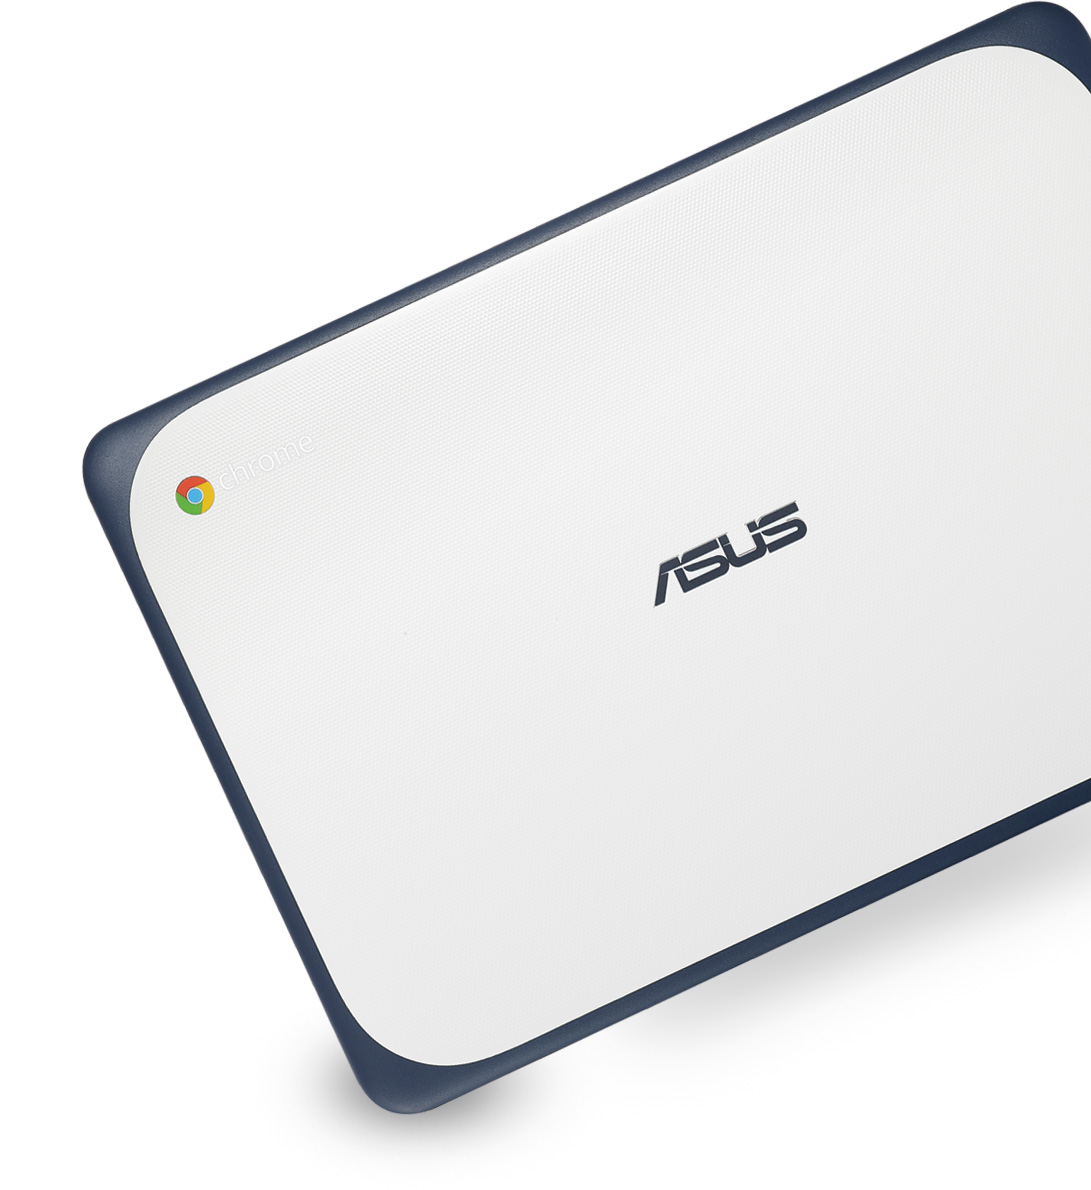 ASUS Chromebook C202SA | Laptops | ASUS USA